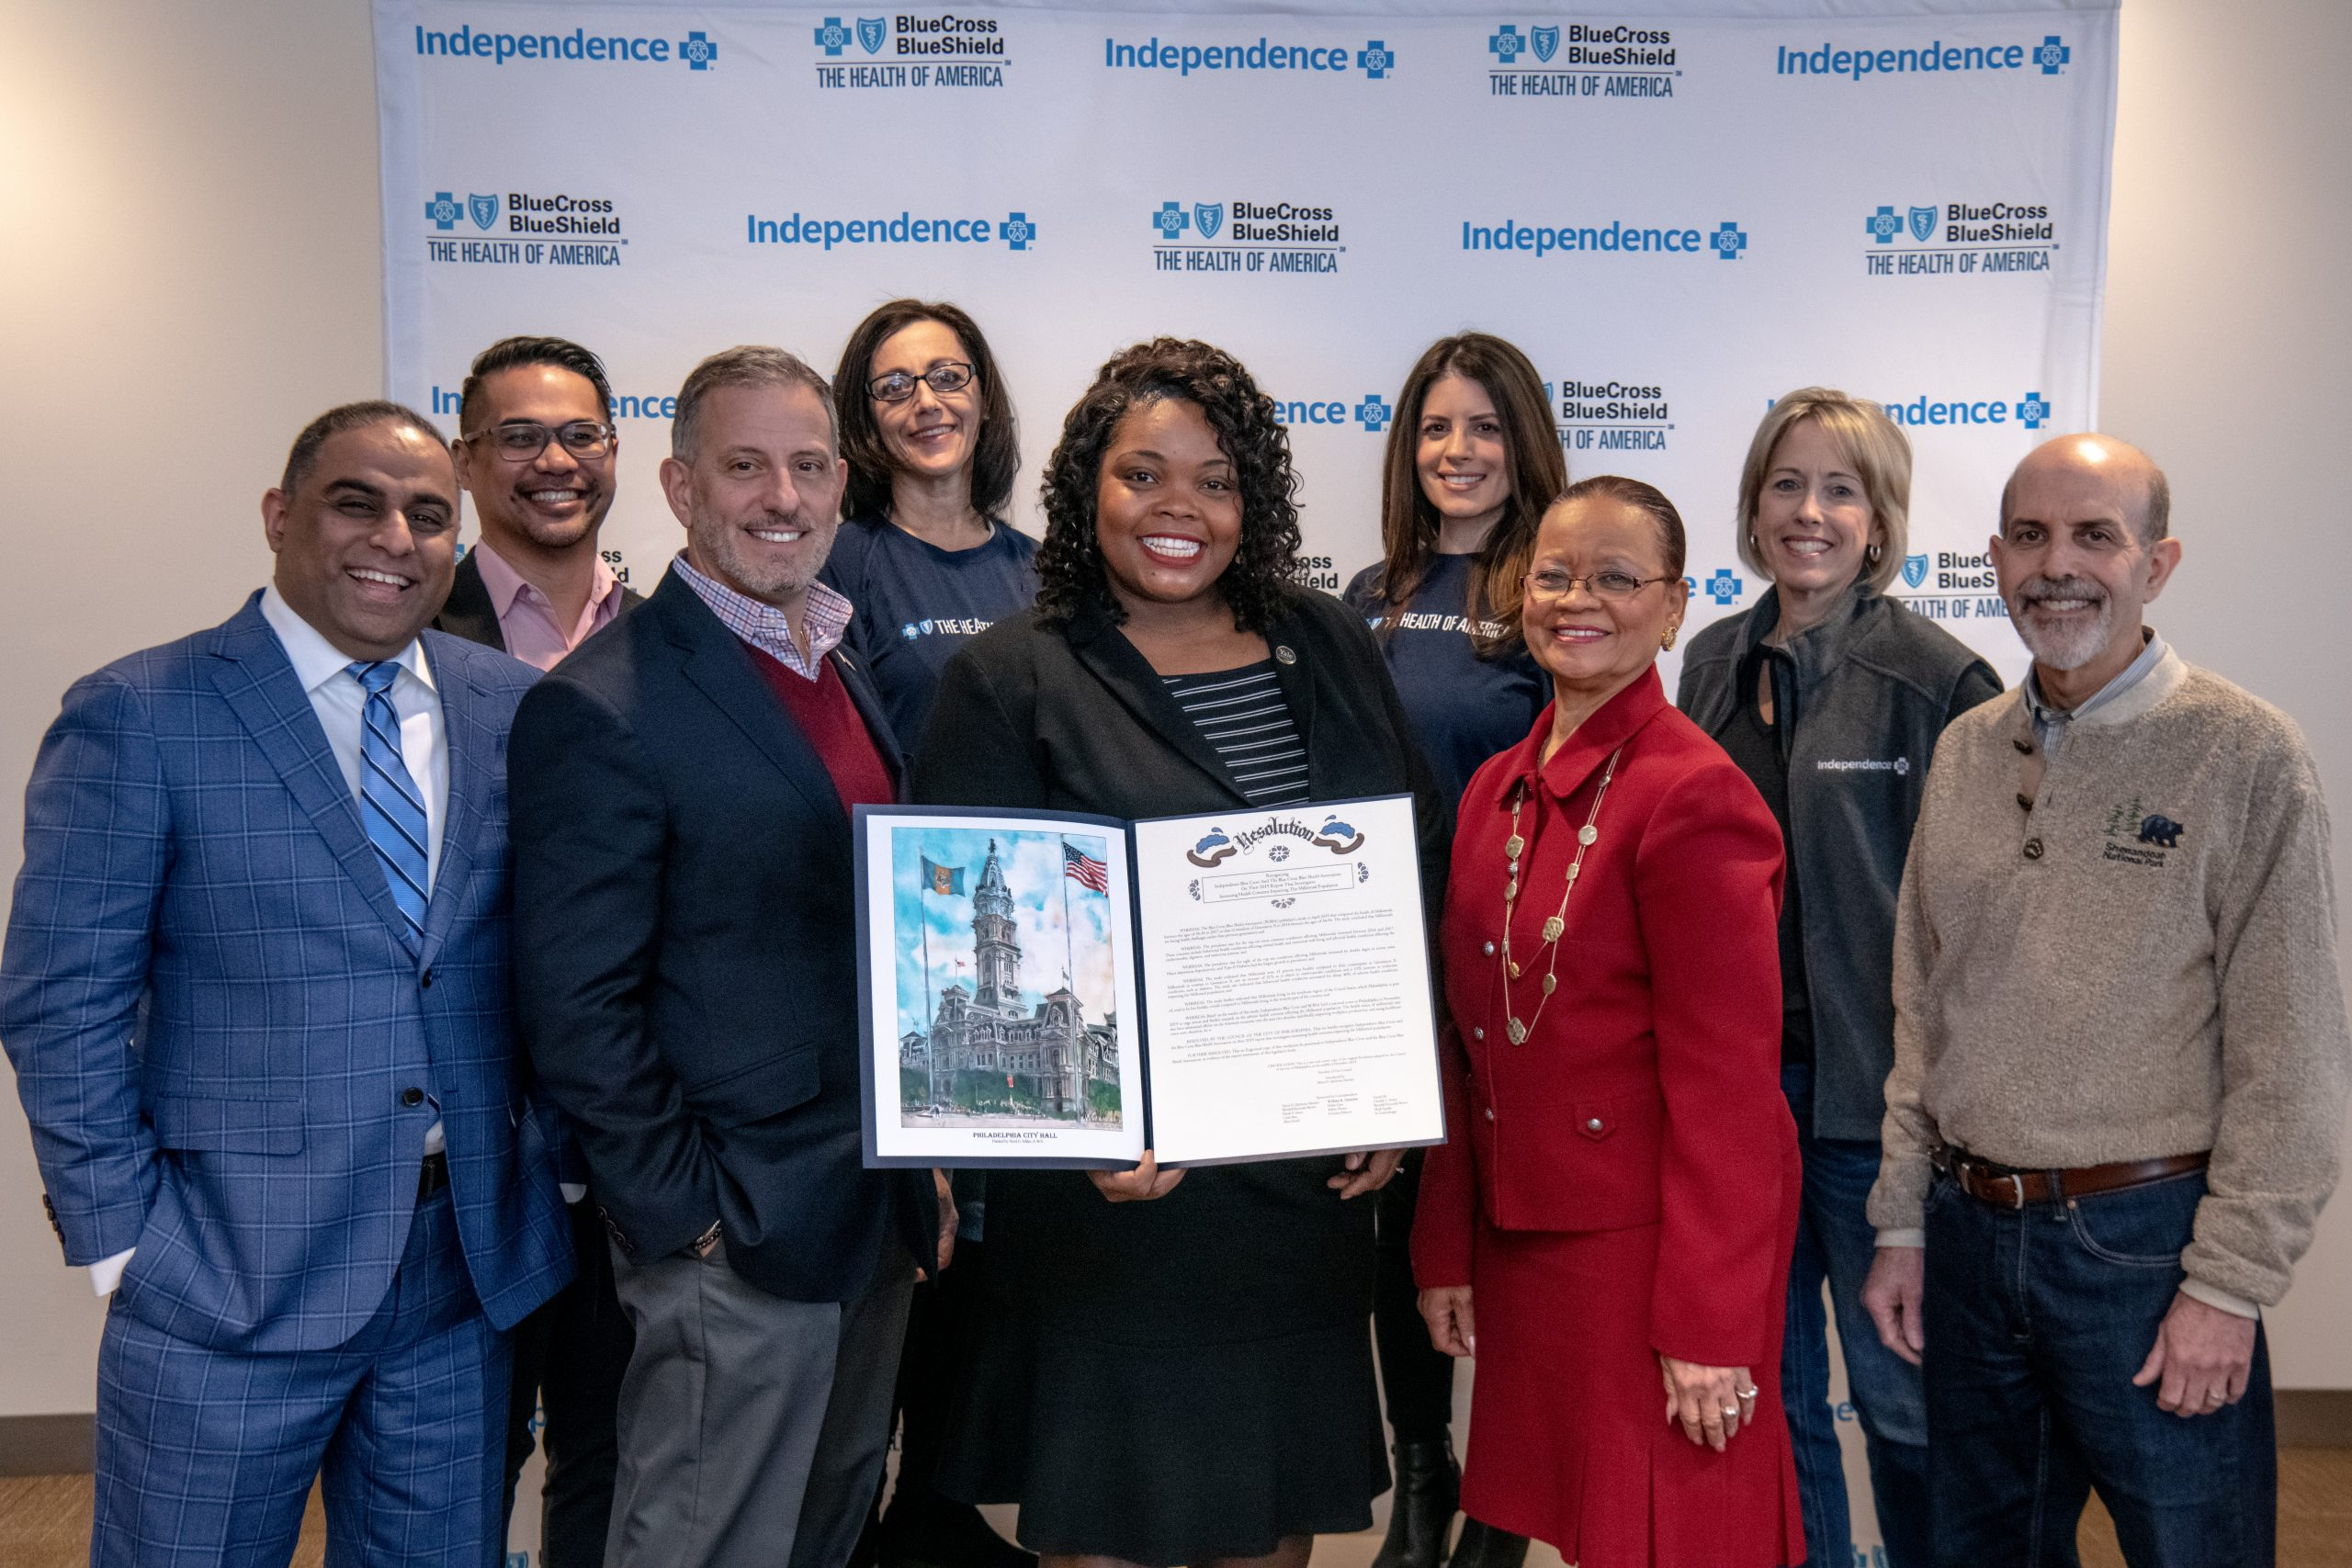 Group photo from City Council Resolution recognizing Independence Blue Cross's efforts to address health challenges facing millennials